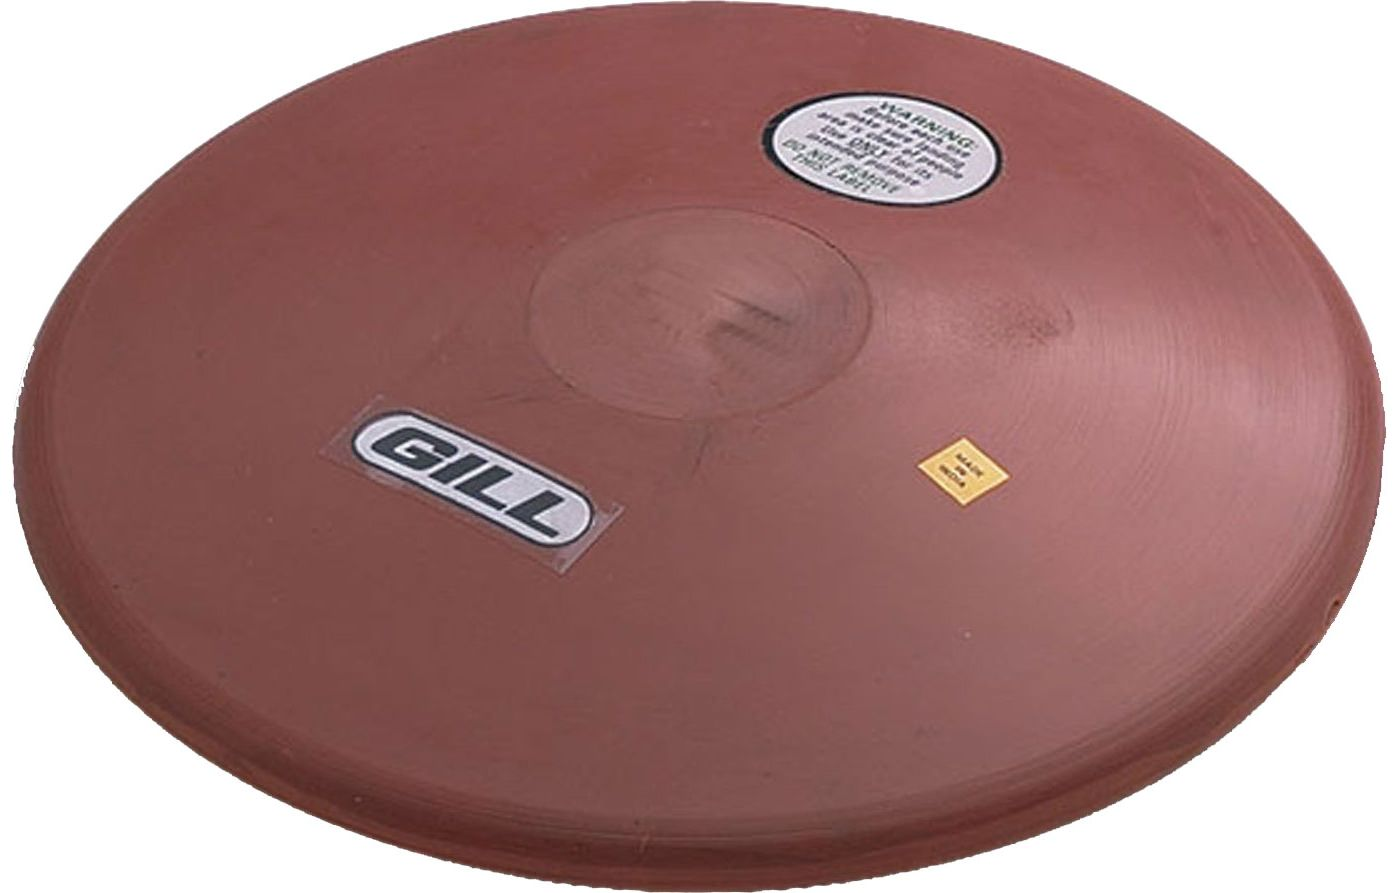 Gill 2K Indoor Rubber Discus